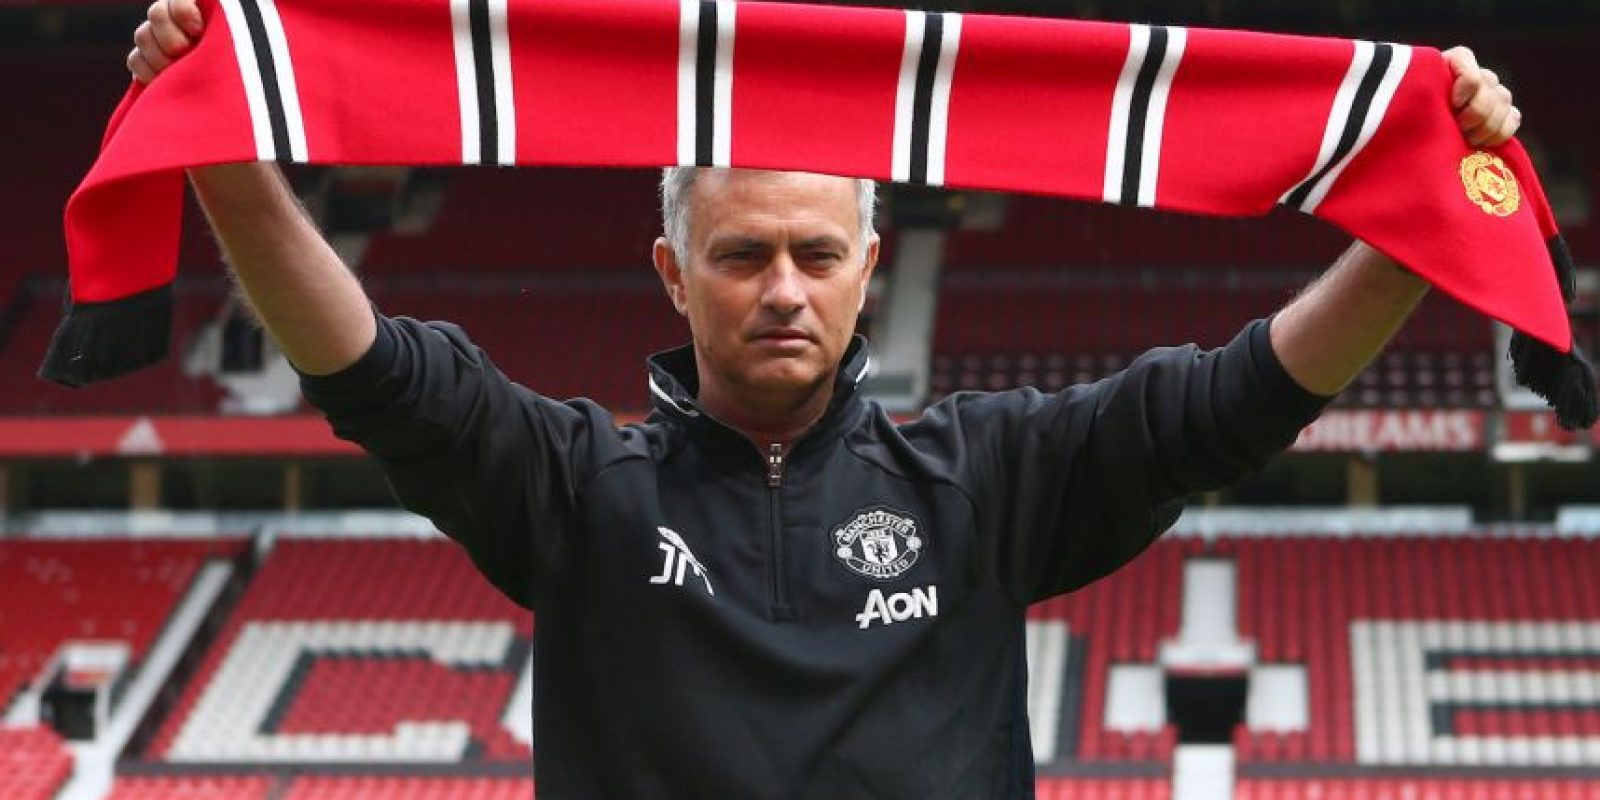 """Mou"" ya tuvo su primer partido comon DT del United. Foto: Getty Images"